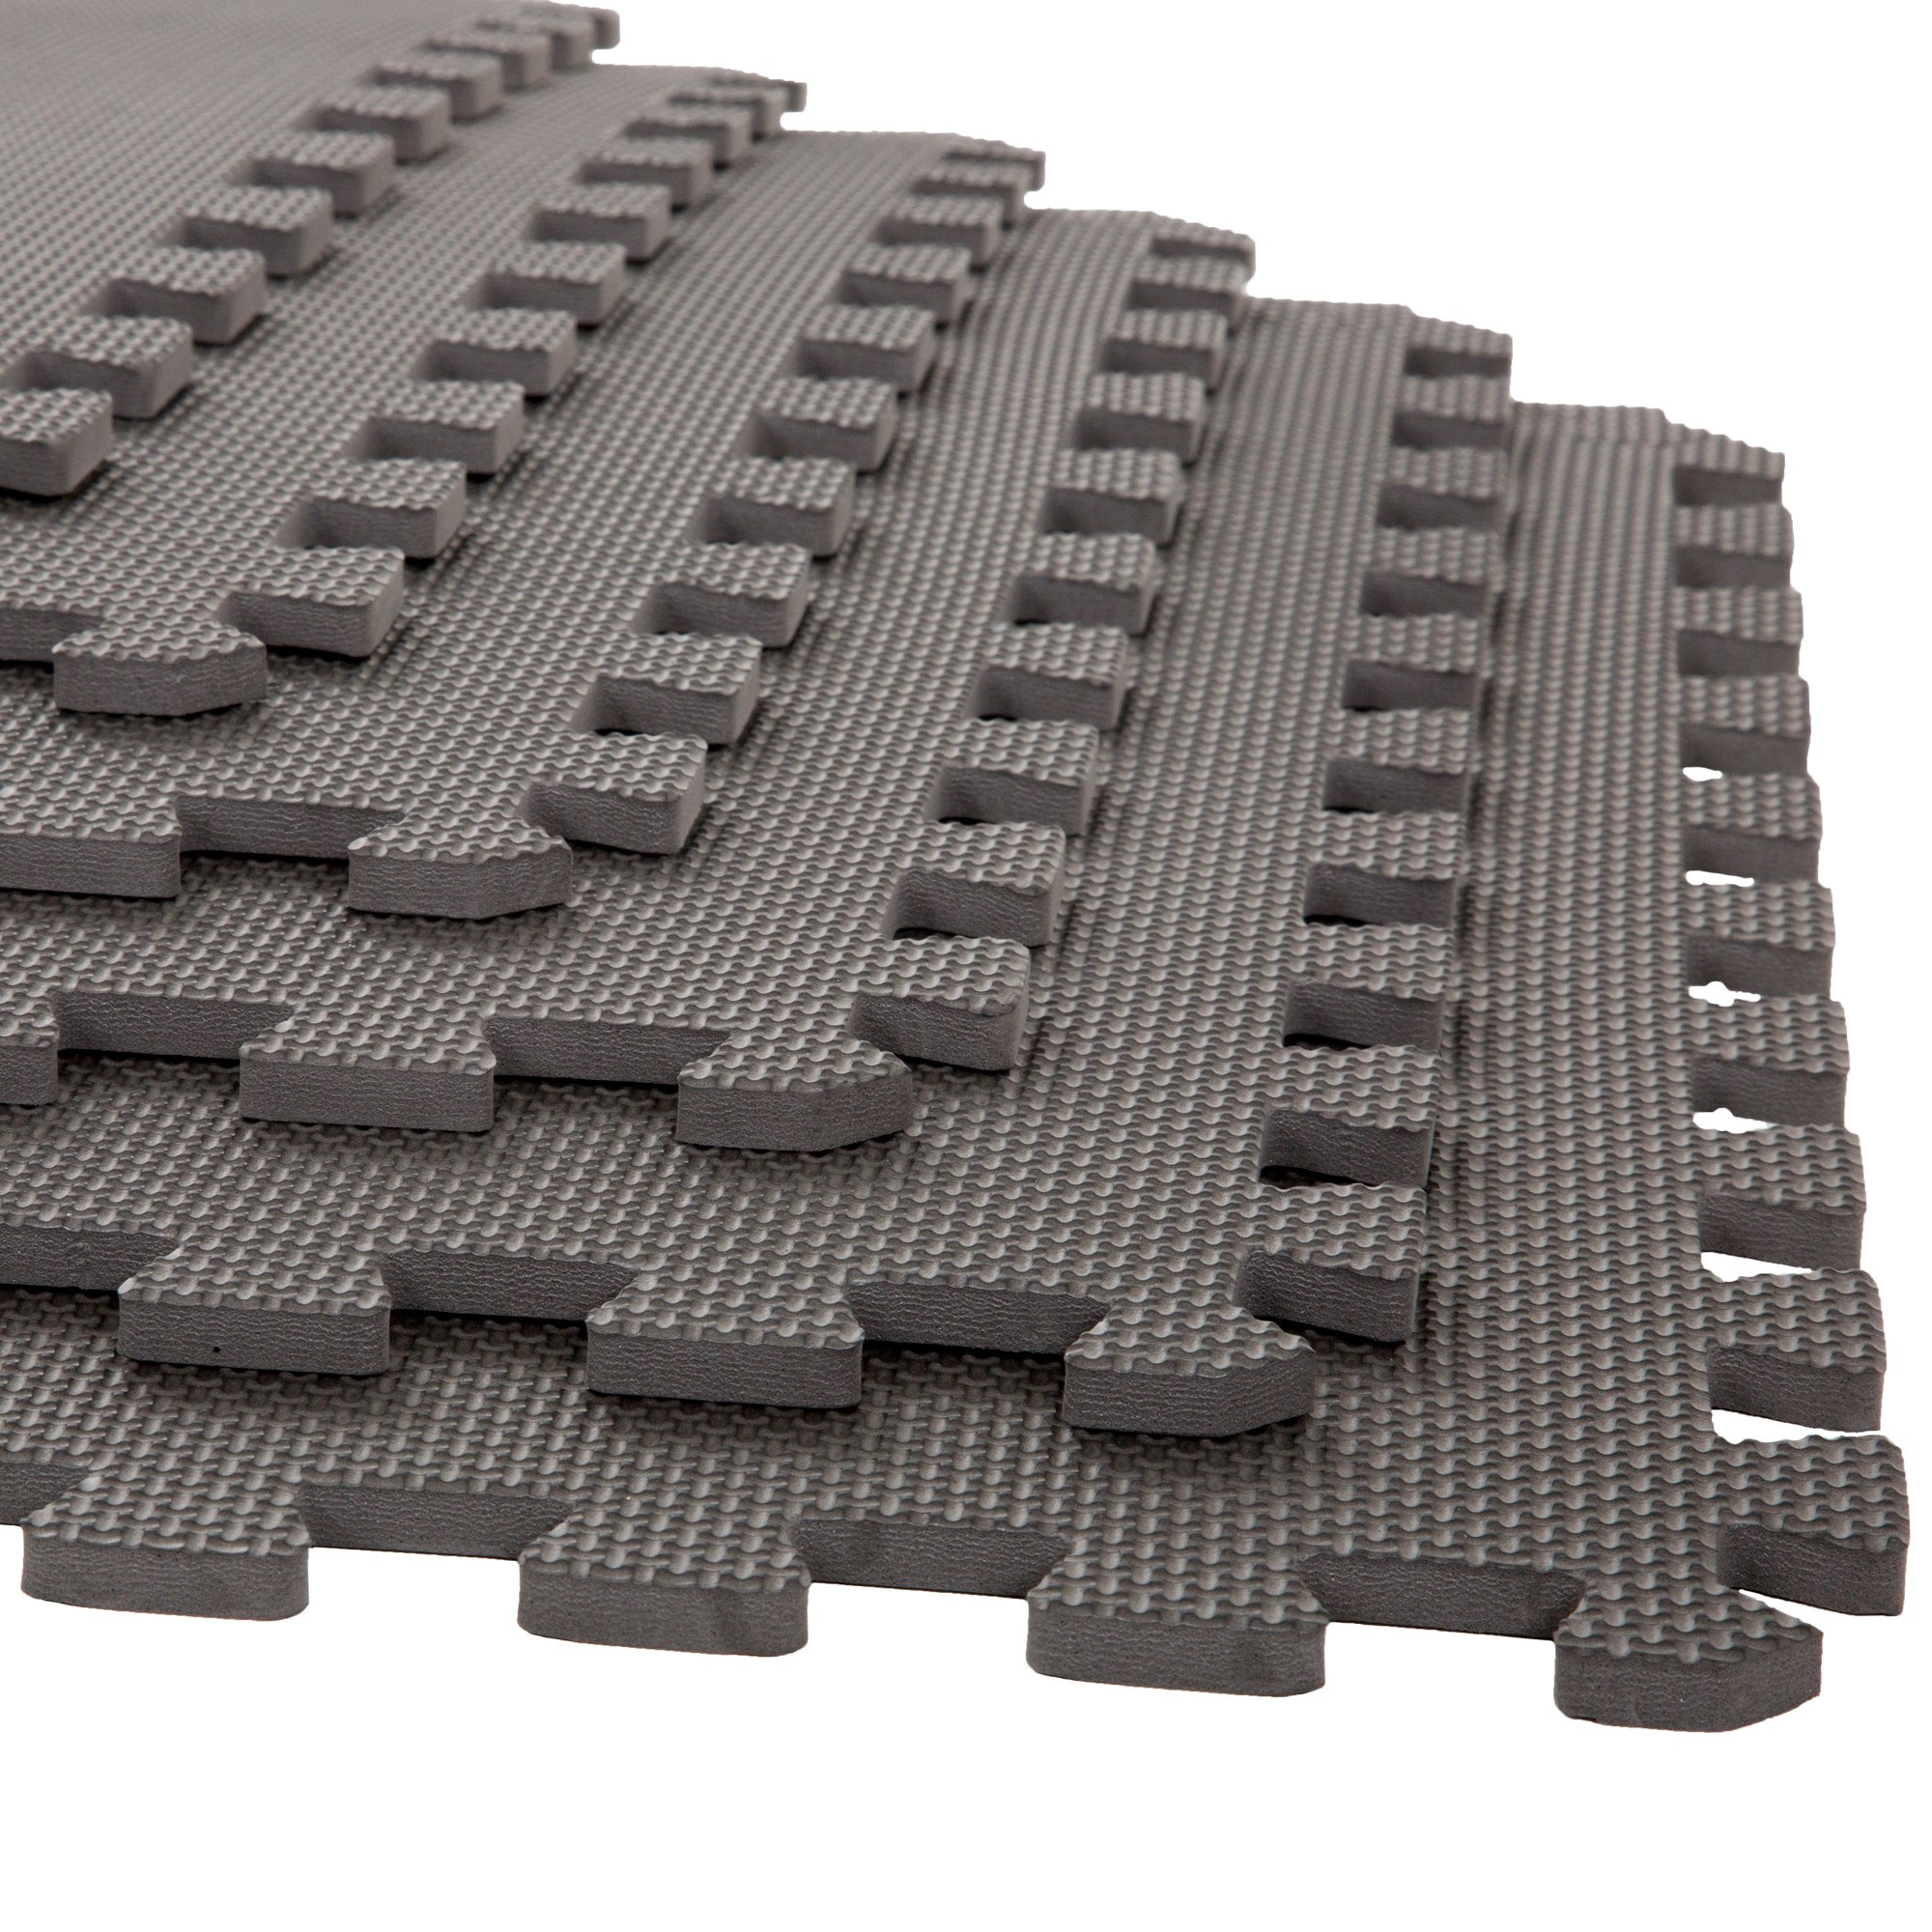 Foam Mat Floor Tiles, Interlocking EVA Foam Padding by Stalwart – Soft Flooring for Exercising, Yoga, Camping, Playroom – 6 Pack, .375 inches thick by Stalwart (Image #1)